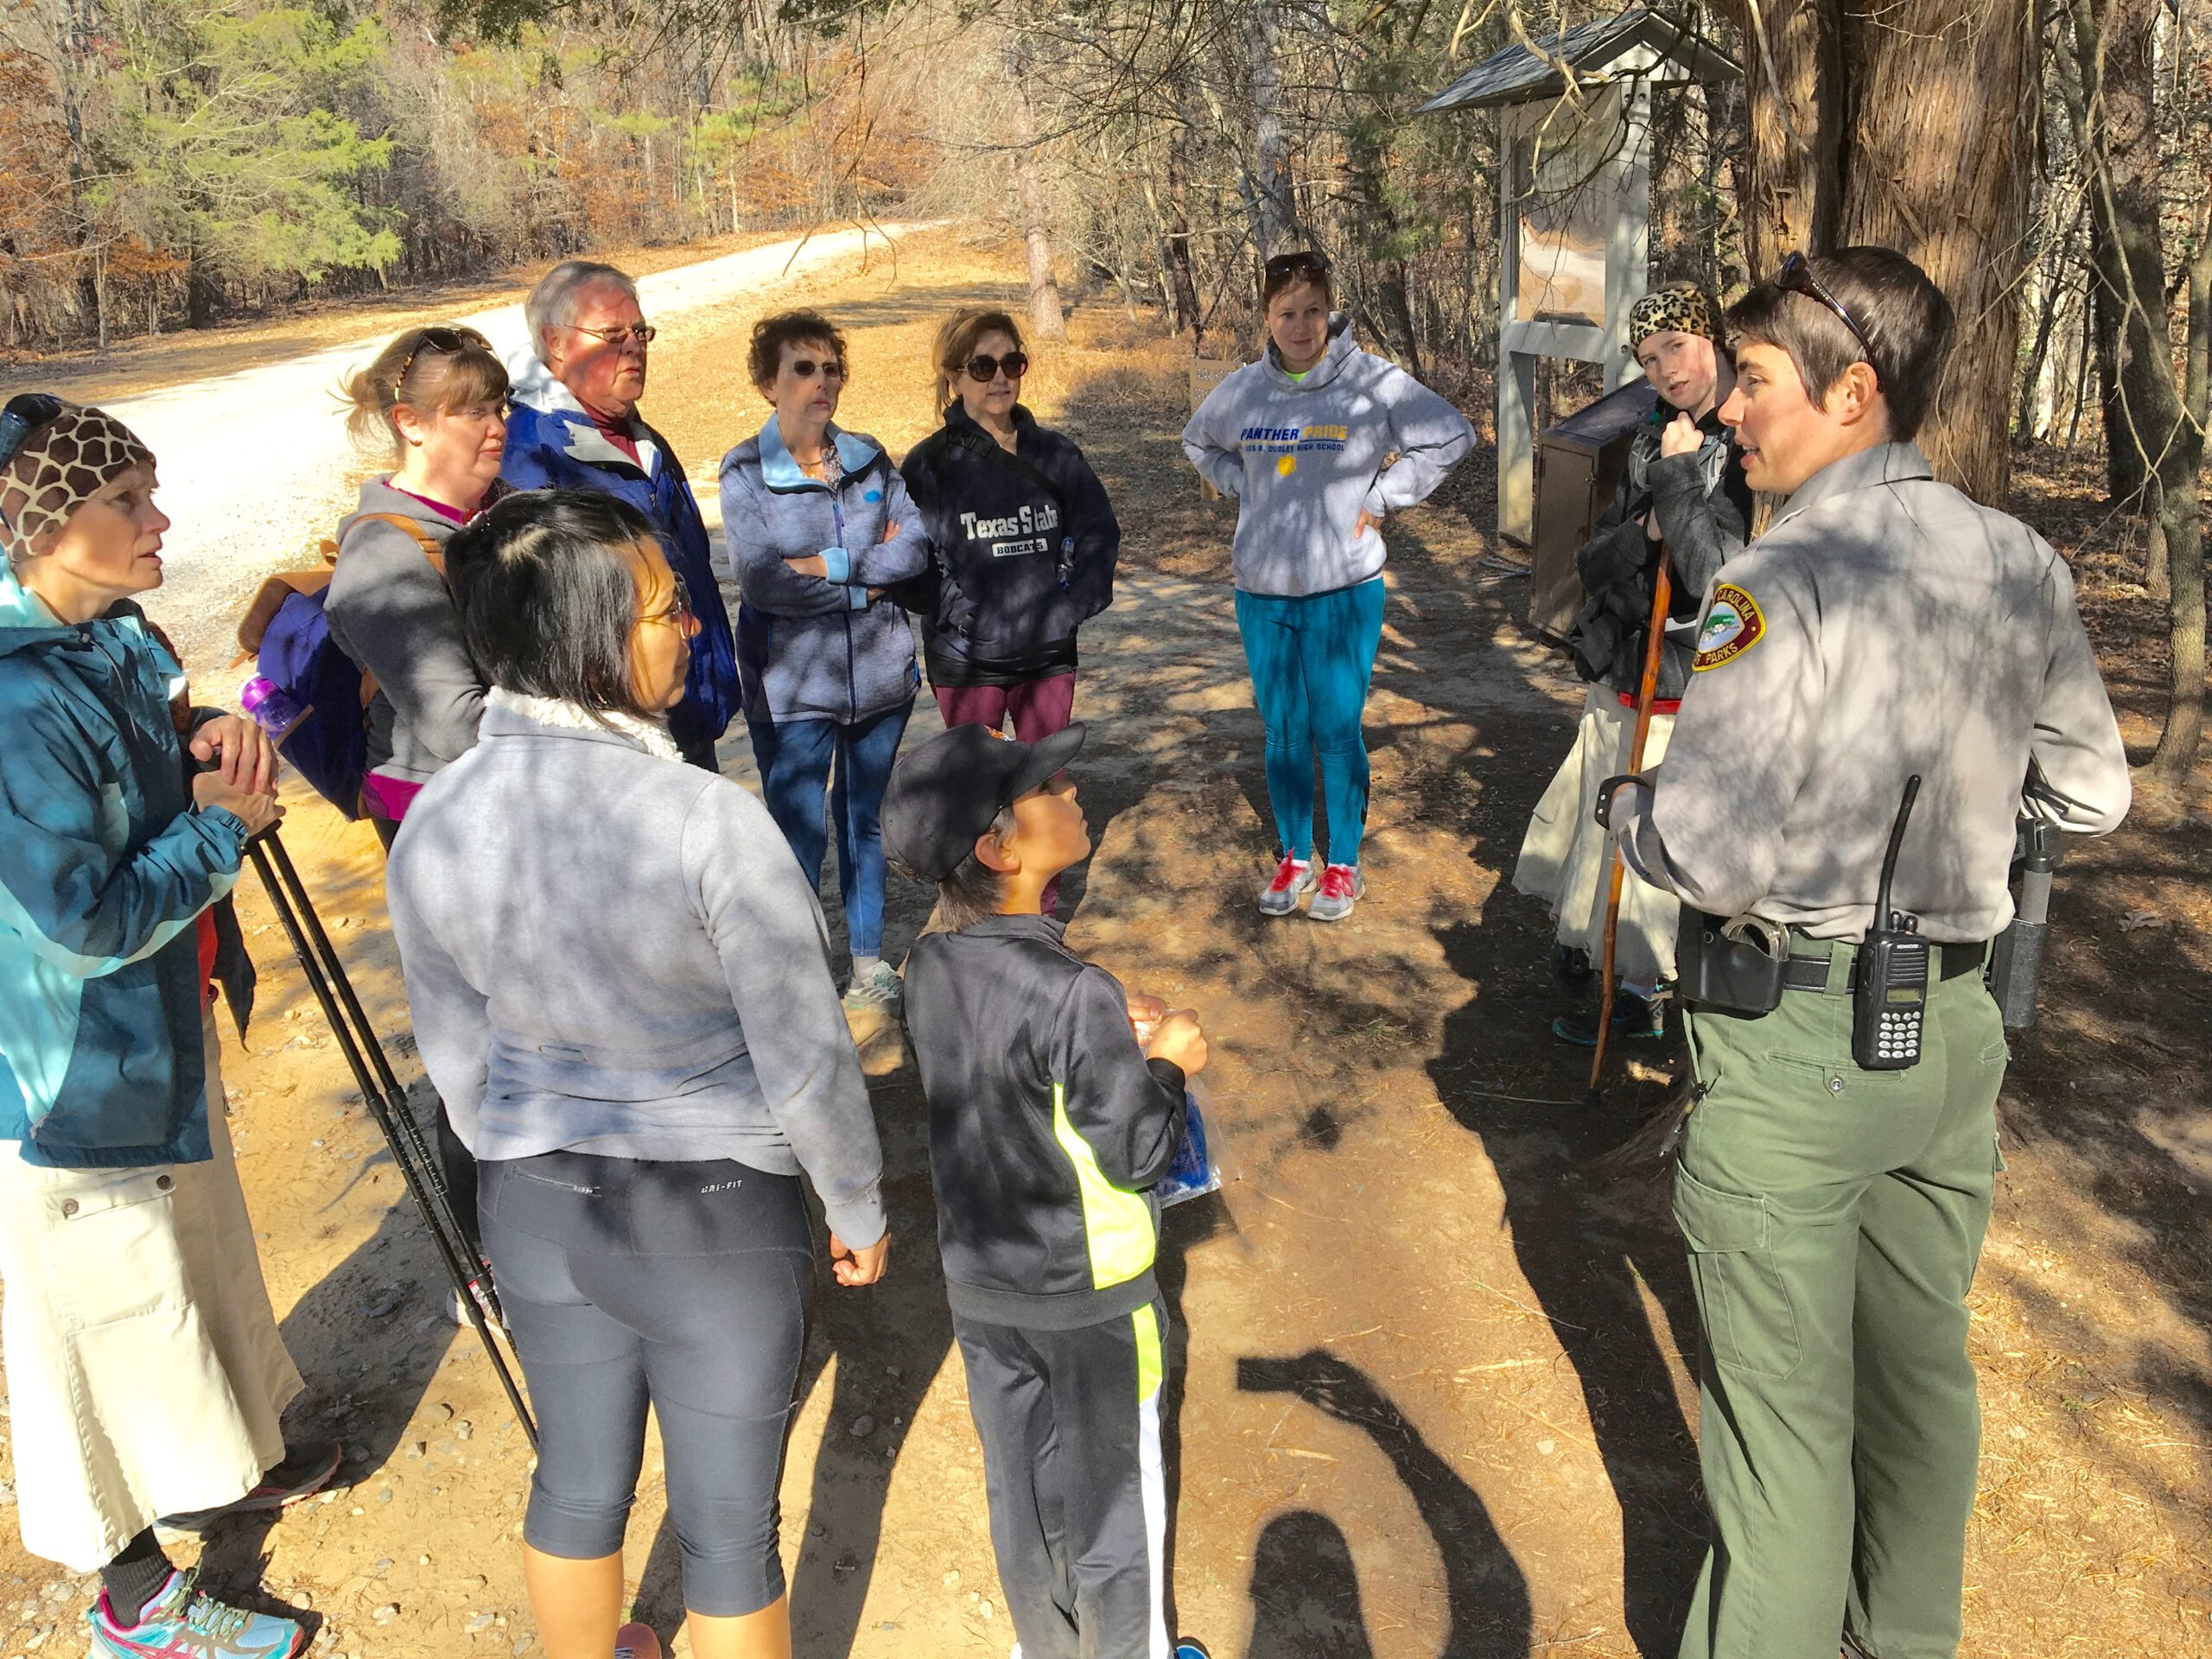 A State Park ranger is a good bet for insuring a positive experience on your first group hike.